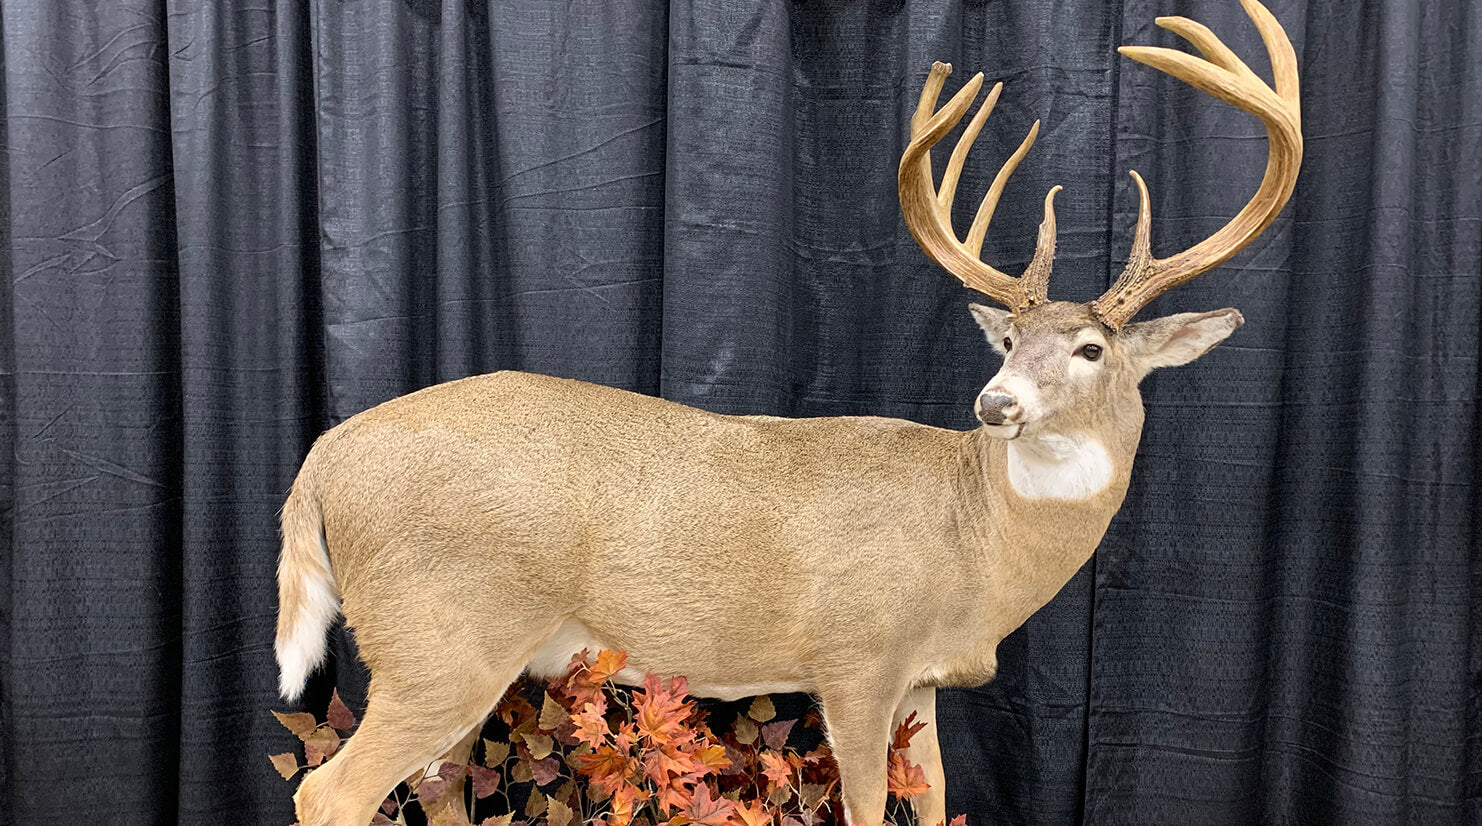 The Largest Typical Buck Ever Taken in the U.S.